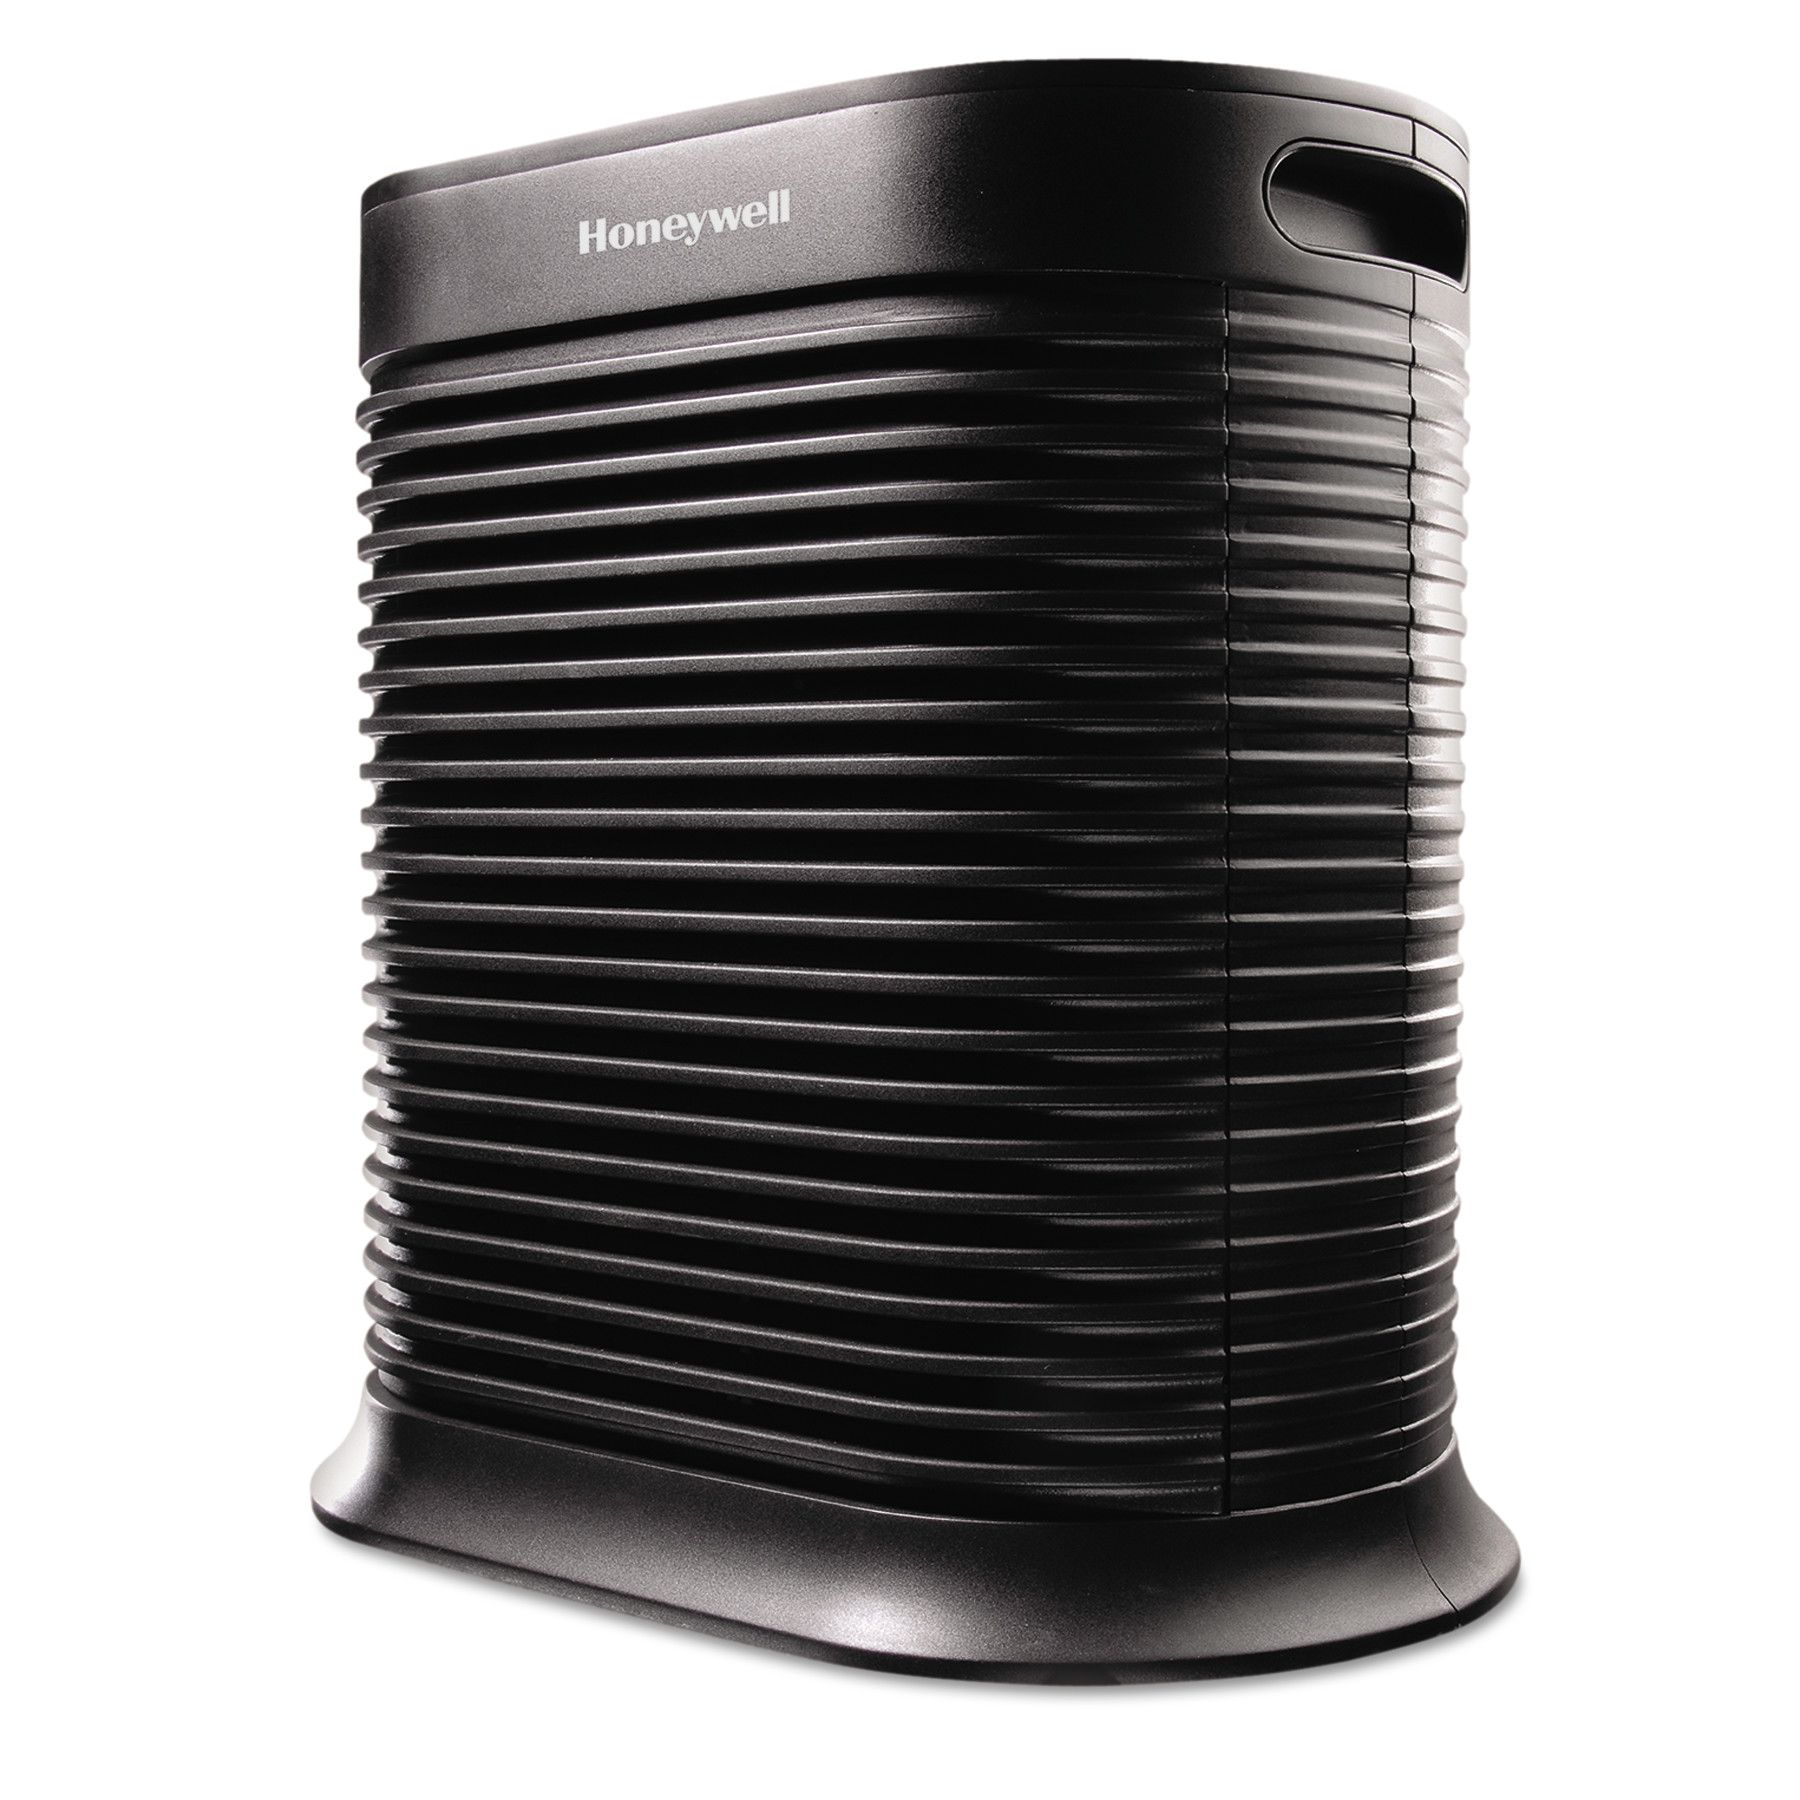 Home Improvement Air purifier reviews, Honeywell air